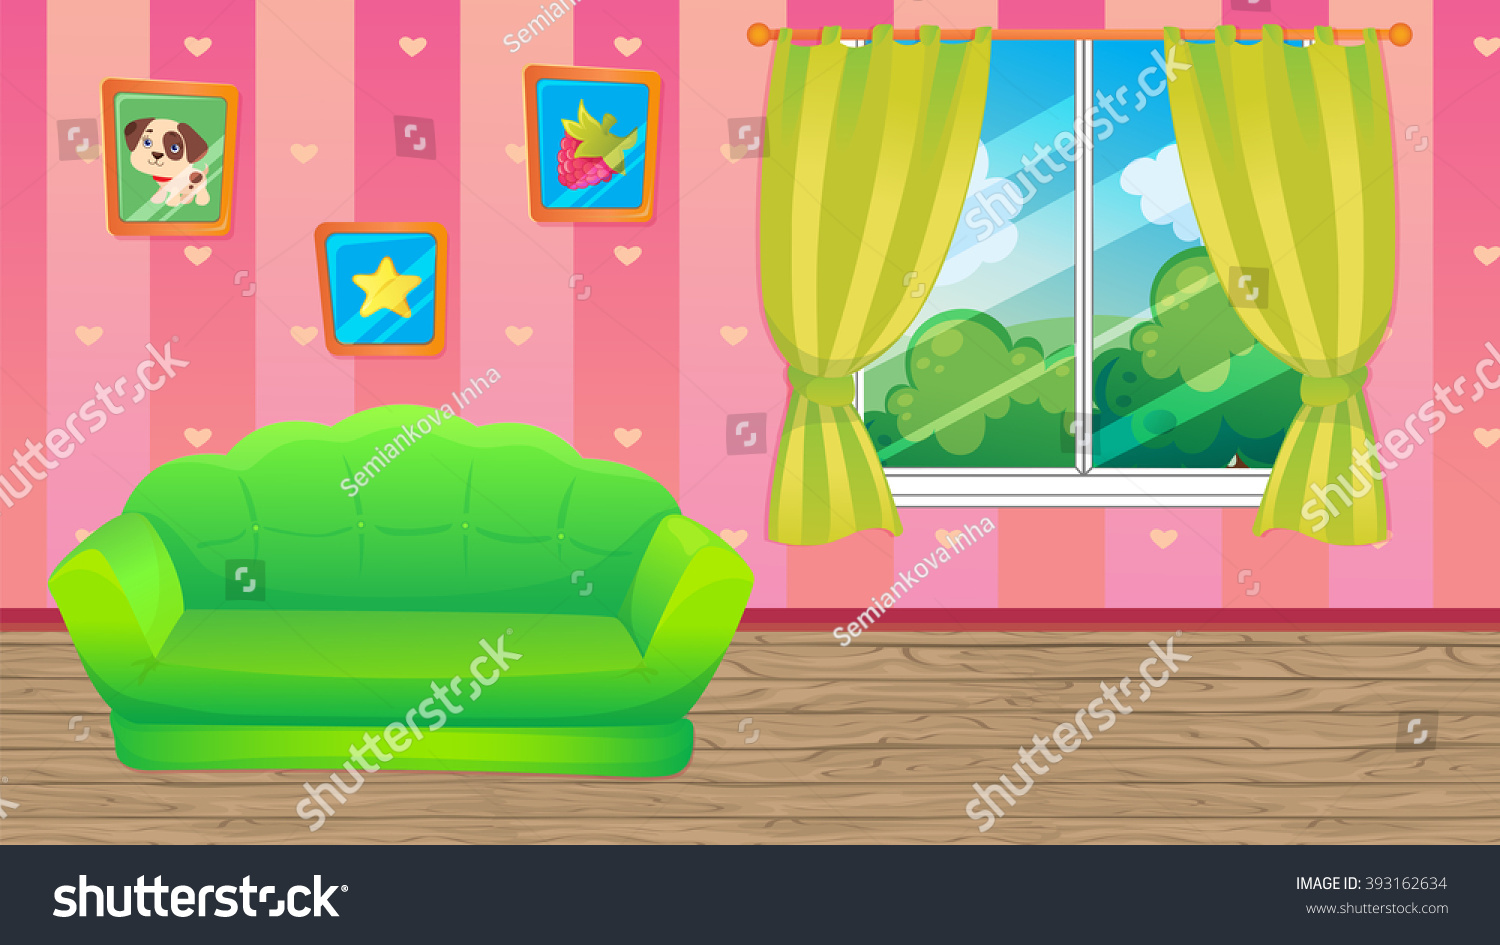 Vector Cartoon Game Background Of Pink Room With Green Sofa